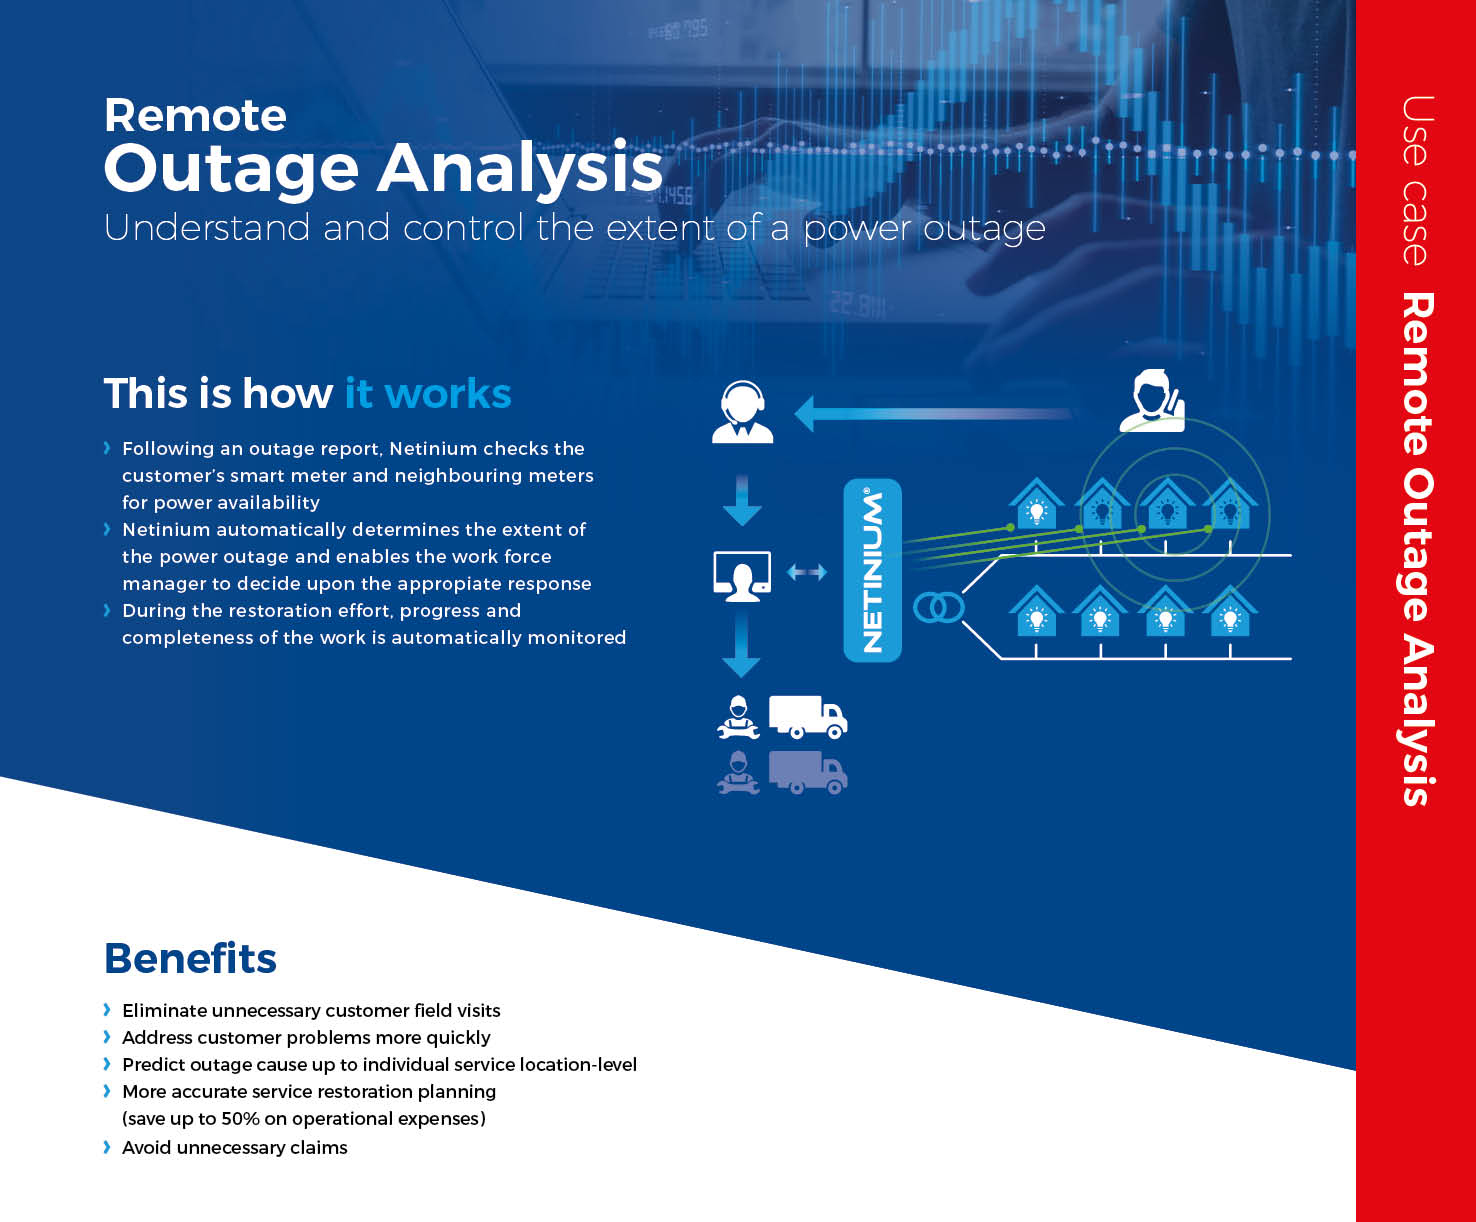 Remote Outage Analysis